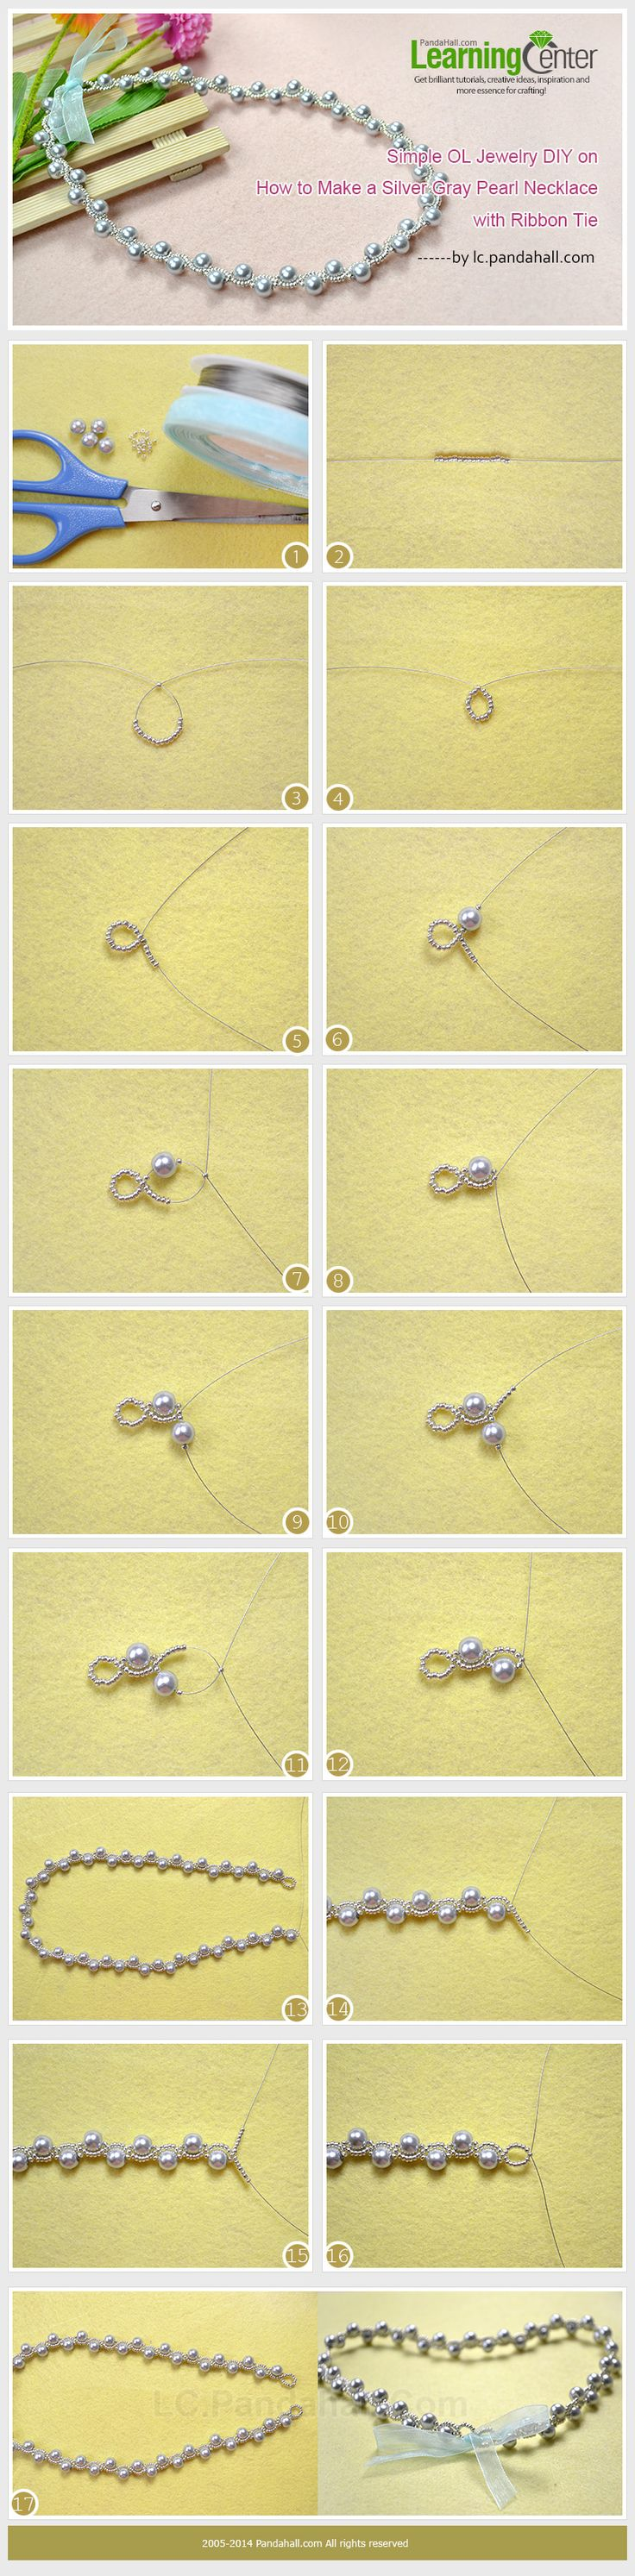 best jewelry making images on pinterest diy jewelry bangle